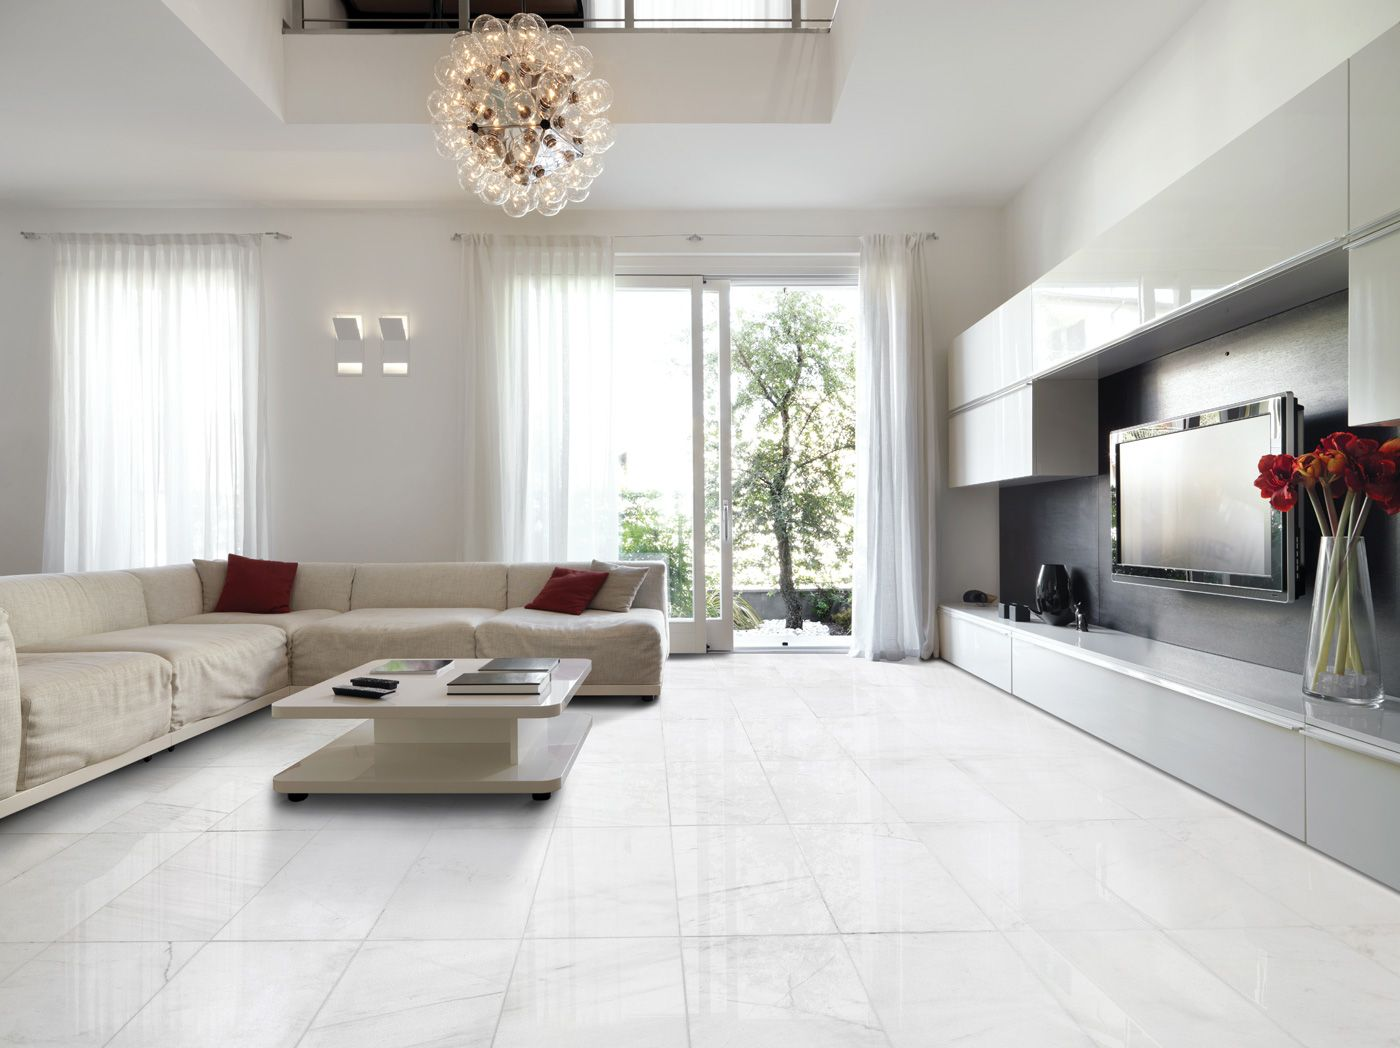 Snow White Polished Marble Collection From Marble Systems Inc Marblesystems Livingroom Wood Effect Floor Tiles Flooring Modern Floor Tiles #white #tiles #living #room